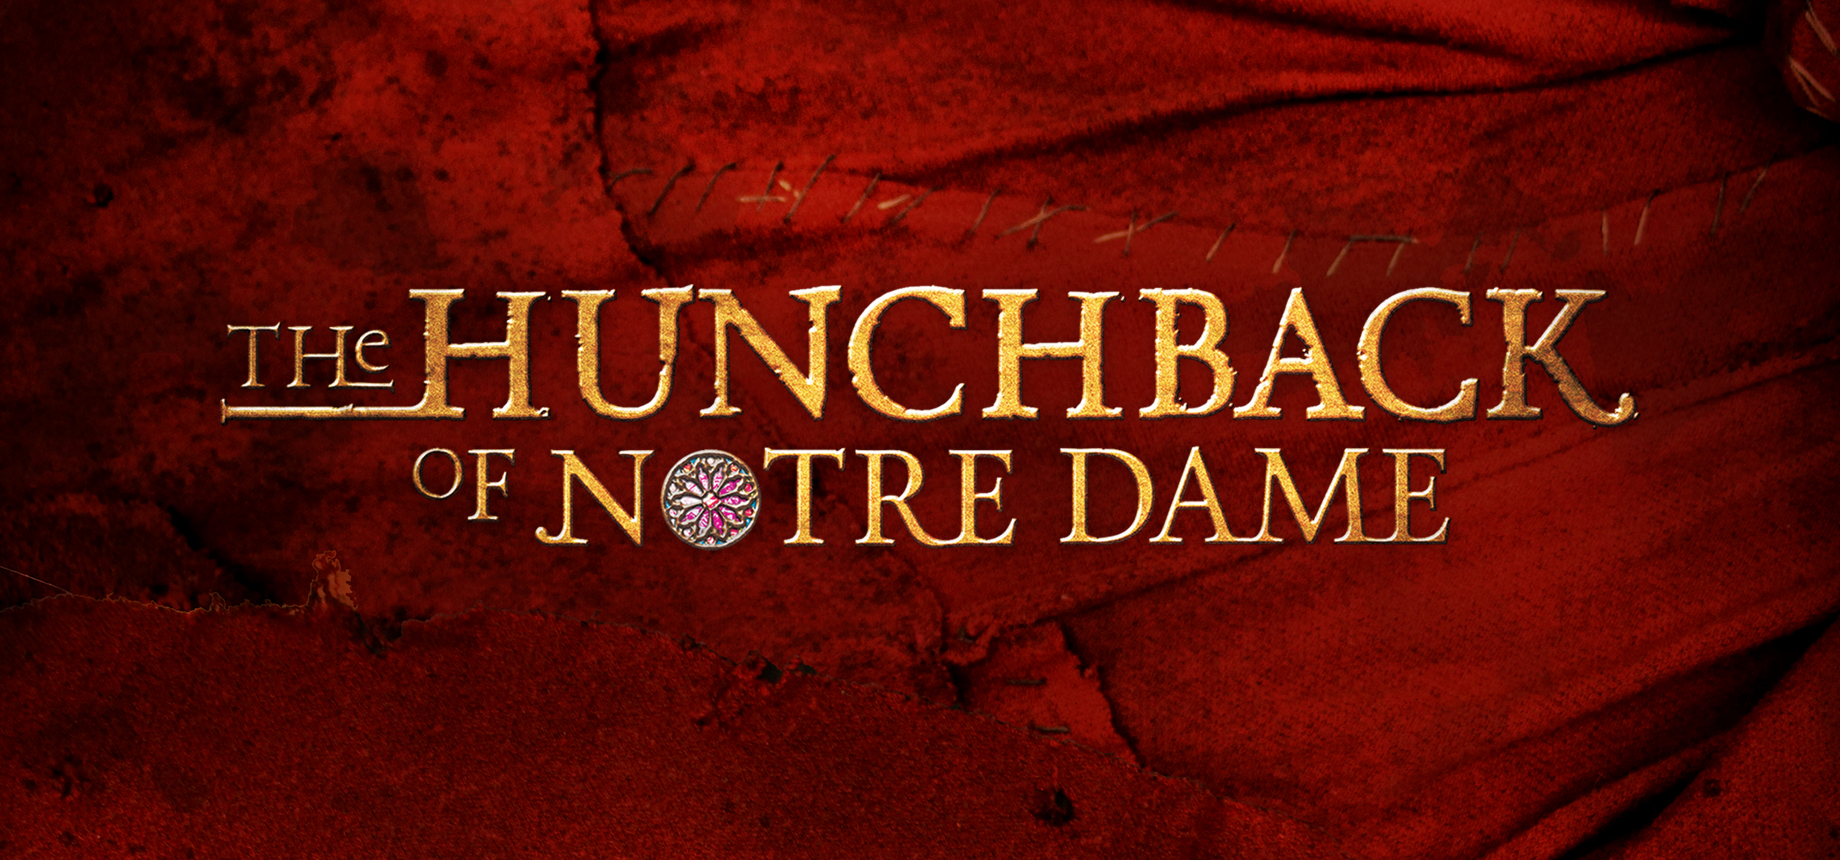 author hunchback of notre dame